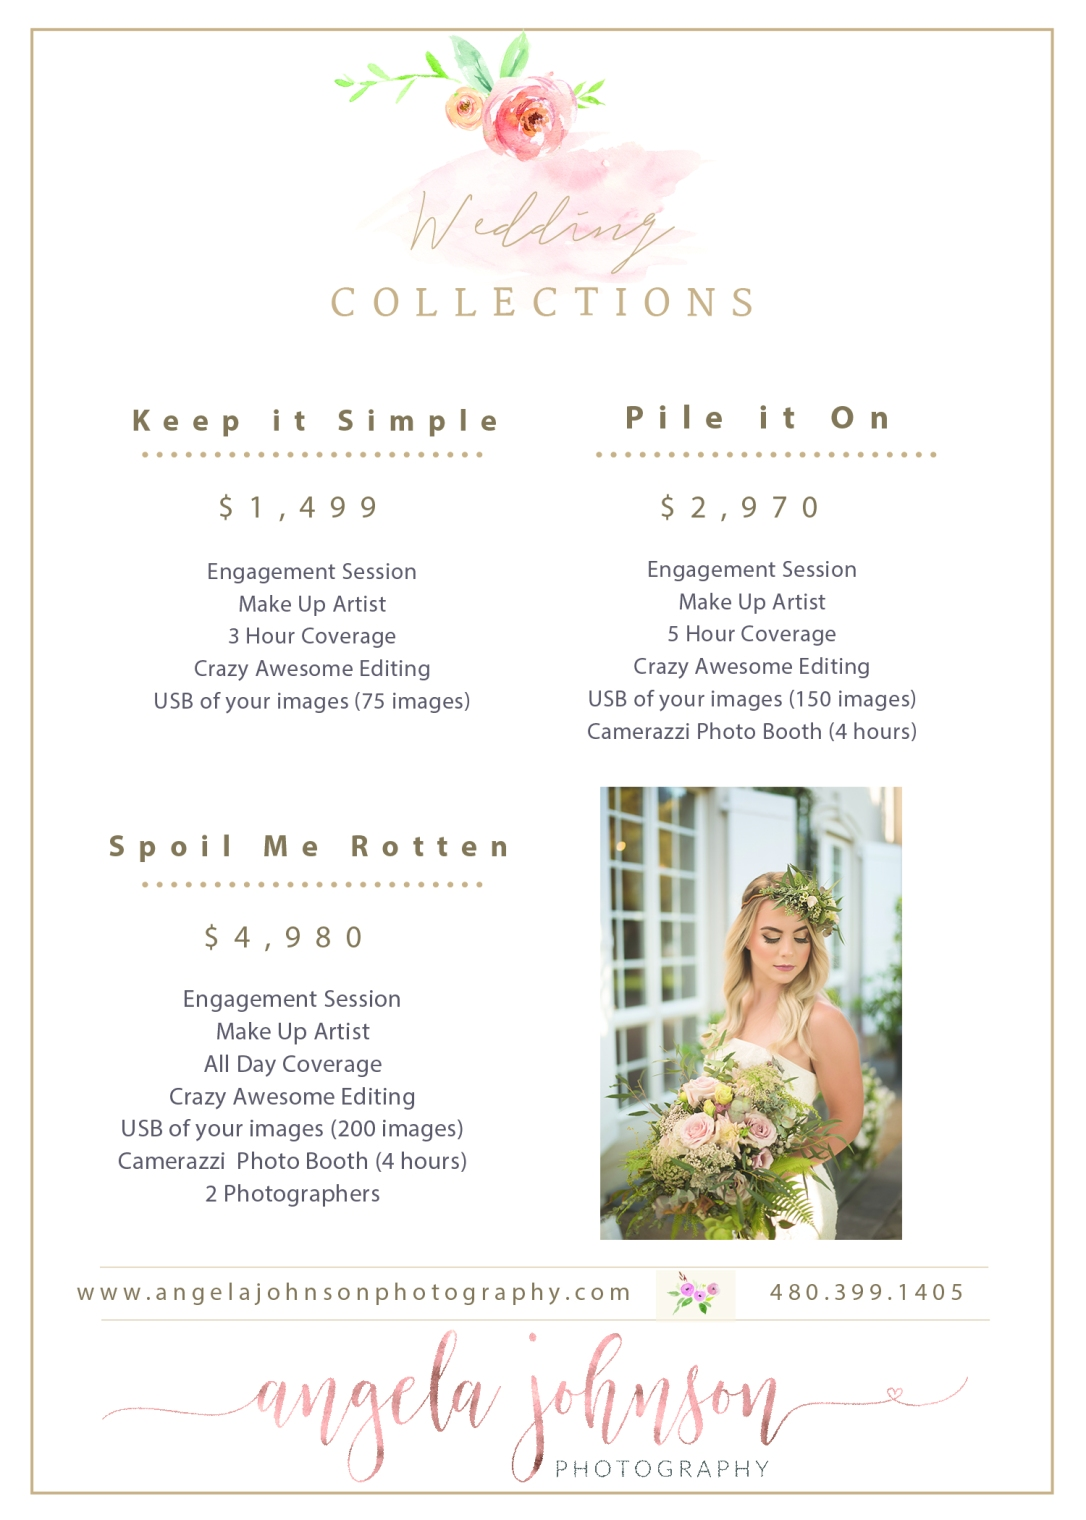 7x5-Pricing-GuideWEDDING